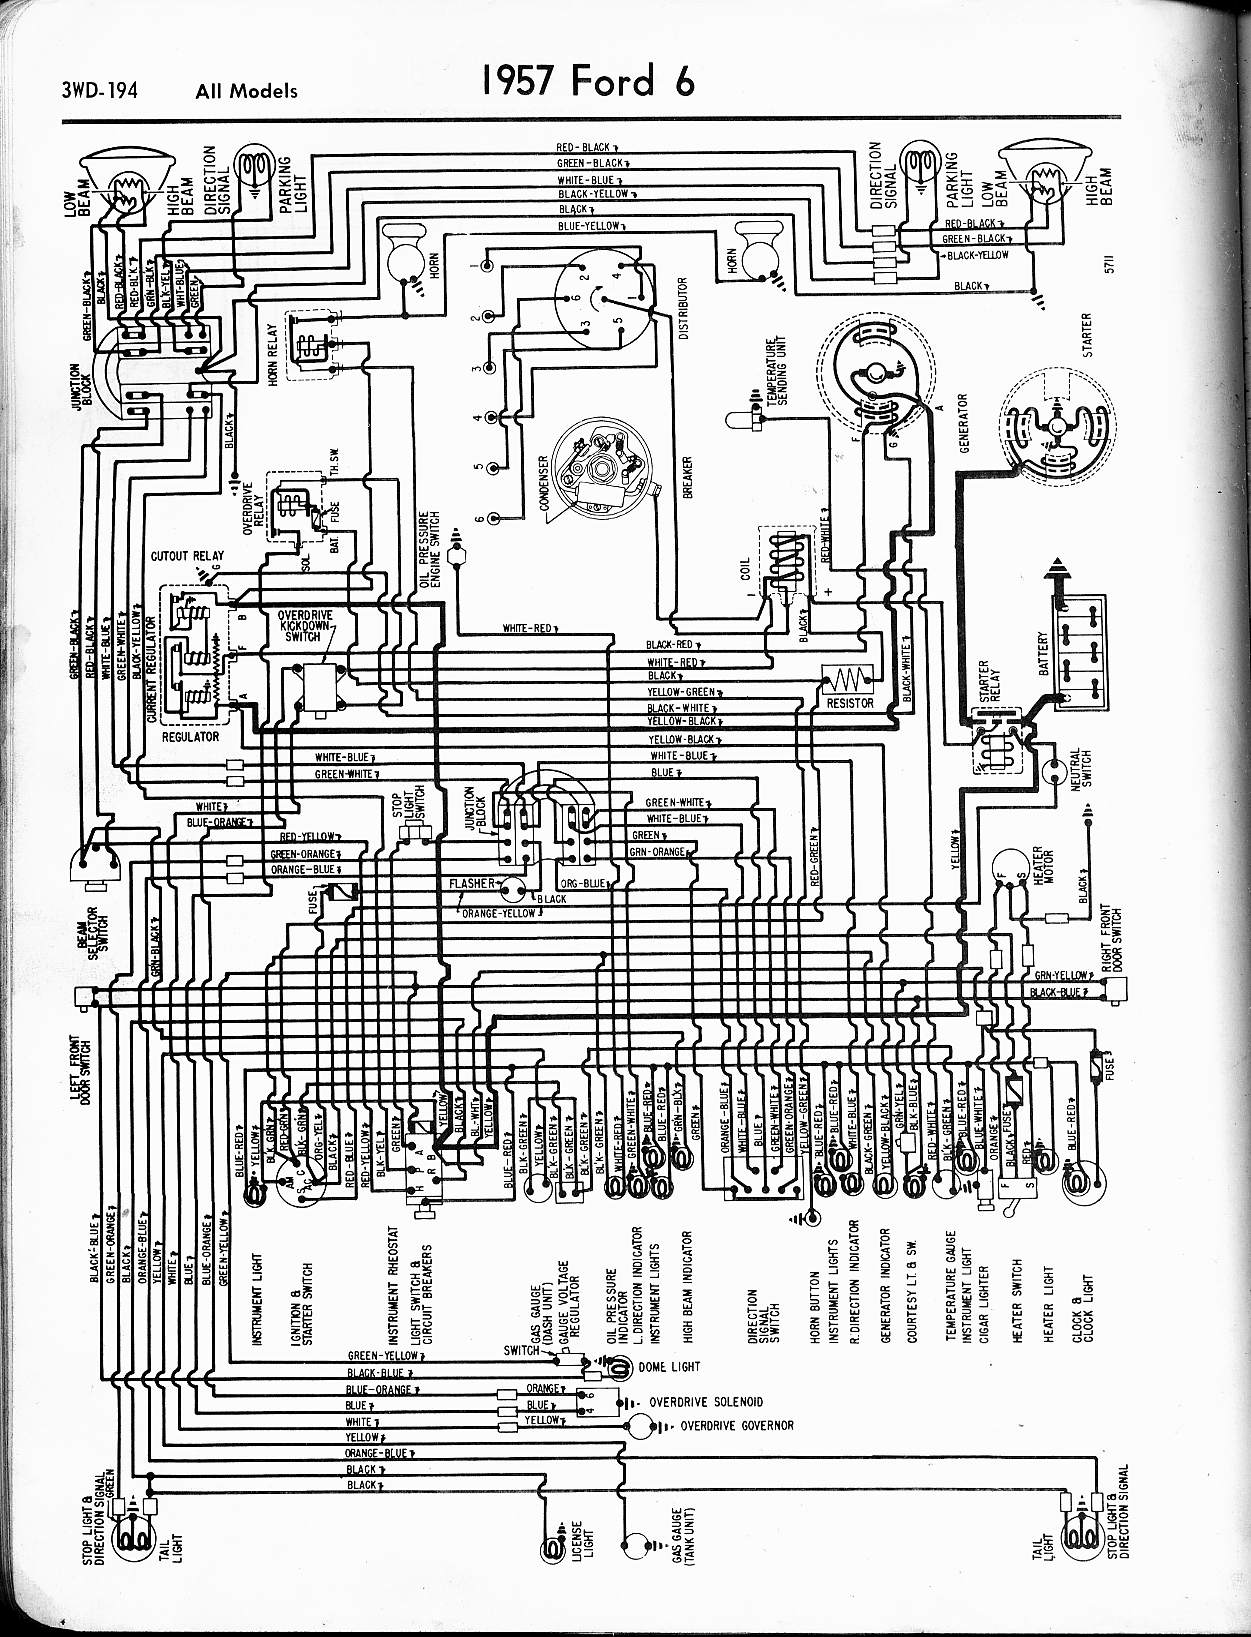 1979 V8 Ford Engine Diagram Wiring Library 57 Drawing A Diagrams